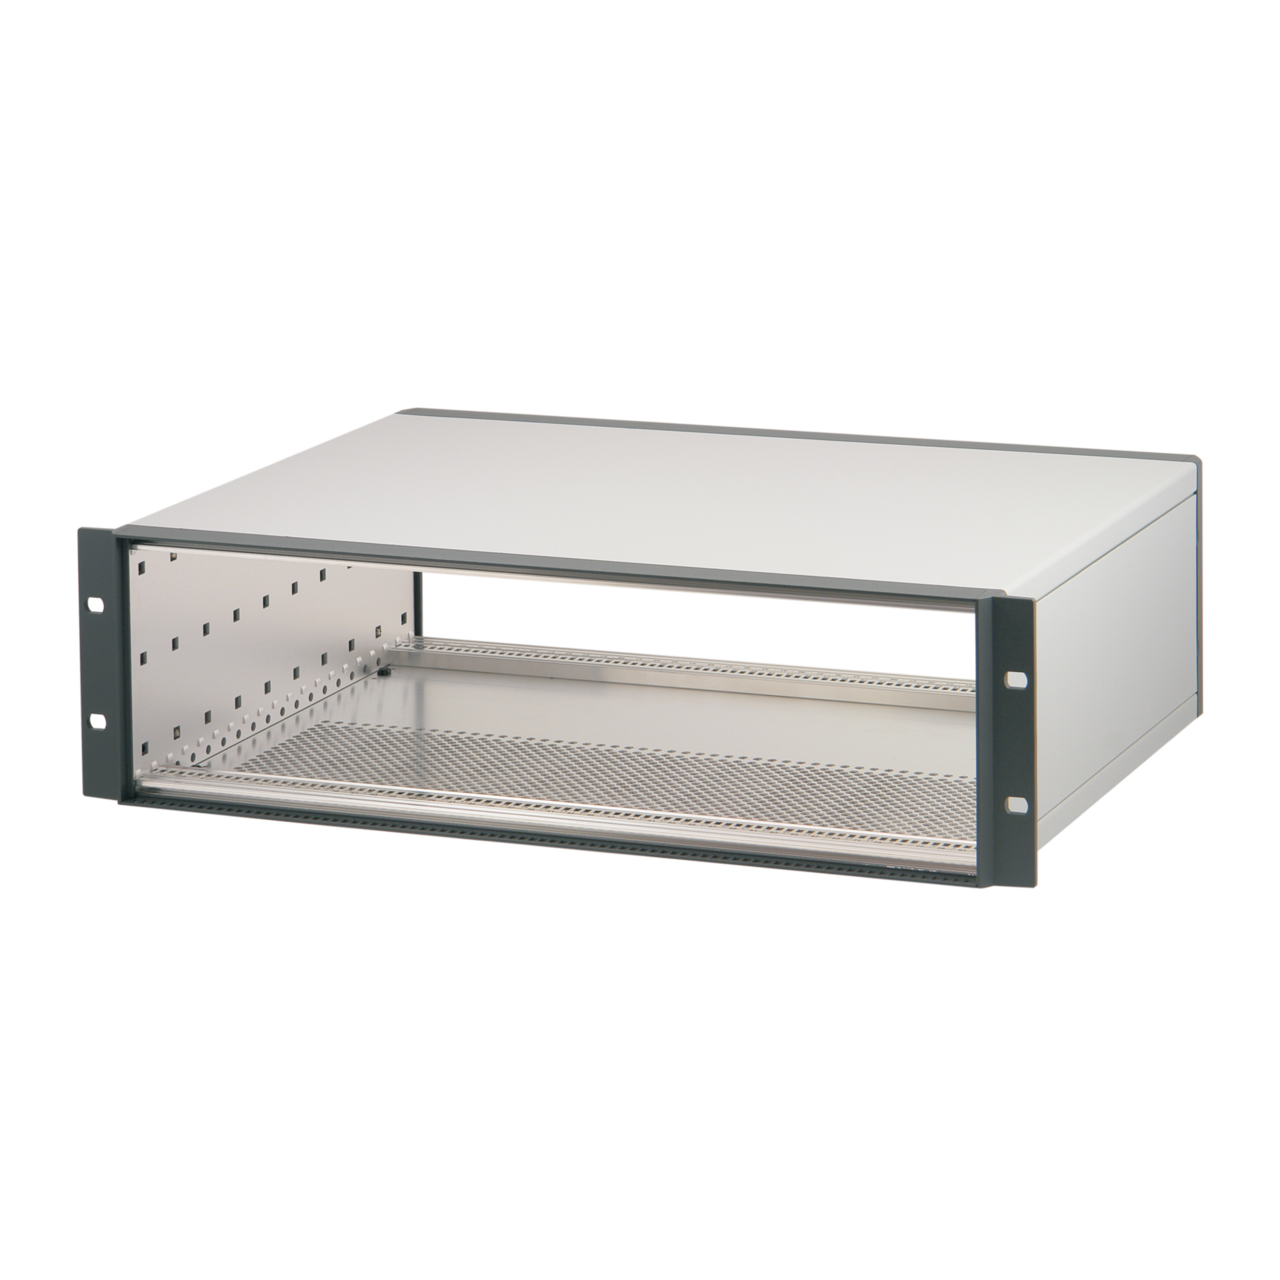 Image for RatiopacPRO, Case, Unshielded, Rack Mount from Schroff - North America